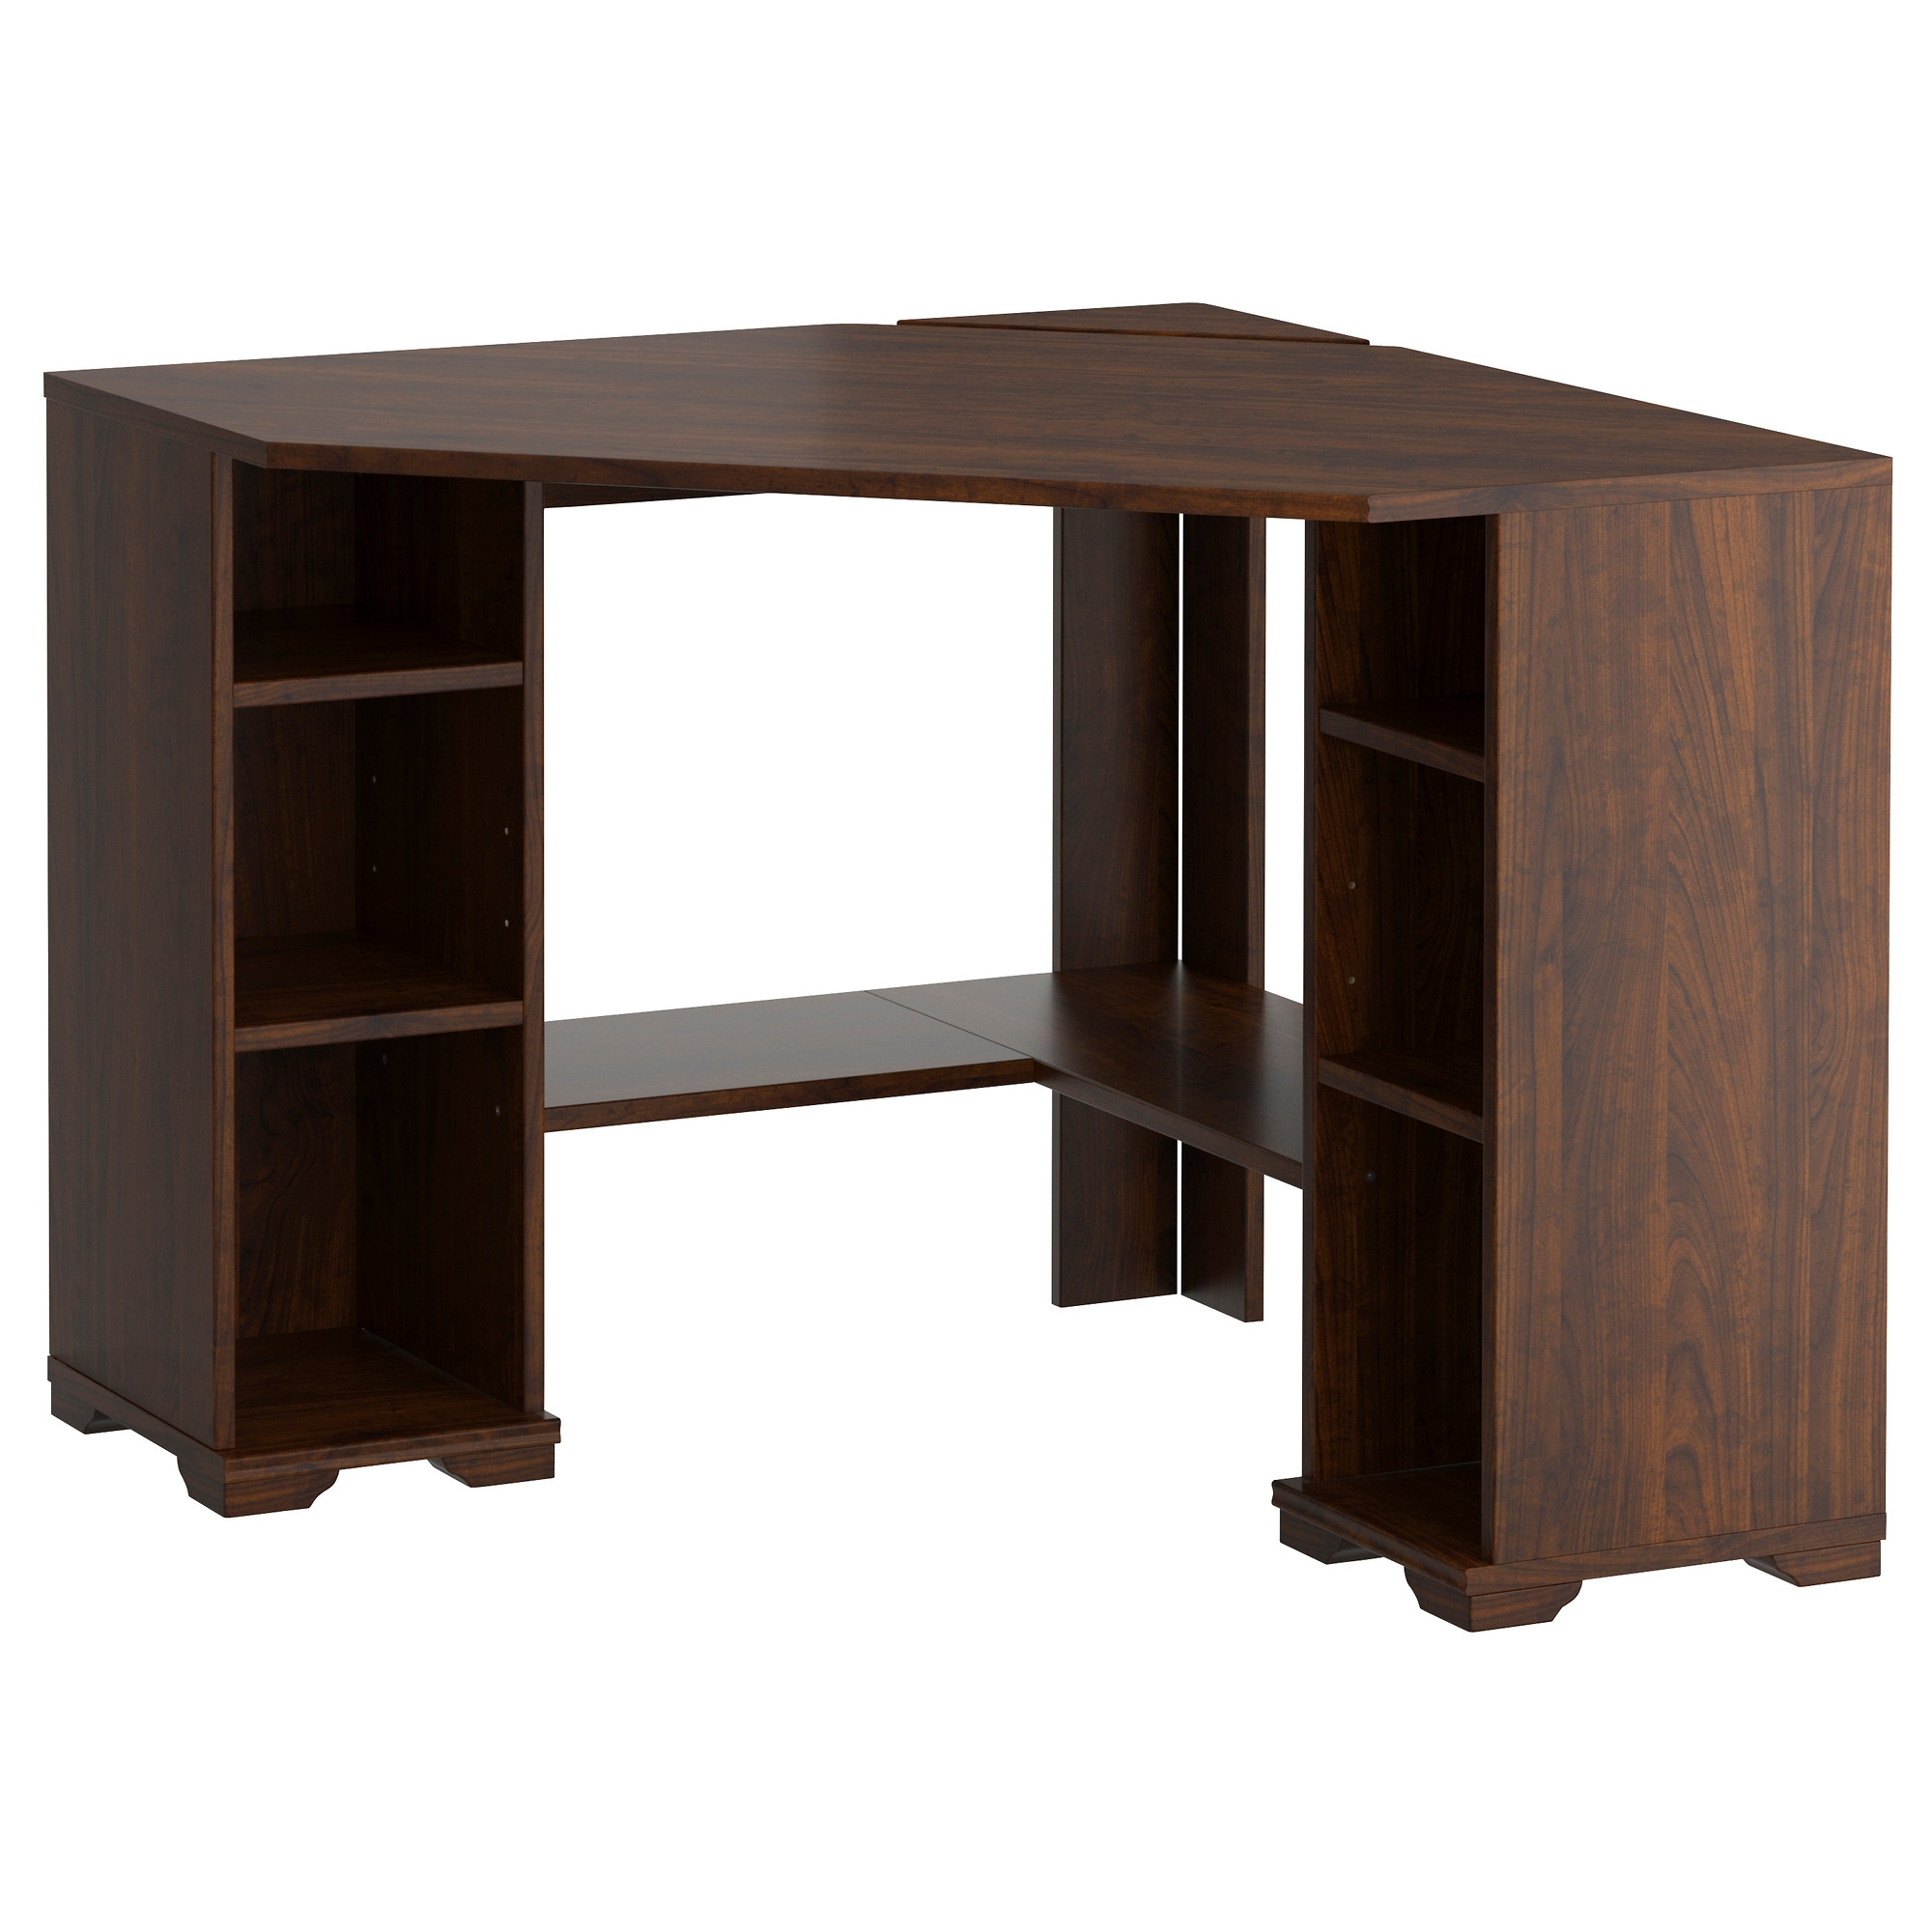 Borgsjö Corner Desk – Ikea (Not My Favorite, But It Would Work For Pertaining To Most Current Brown Computer Desks (View 3 of 20)